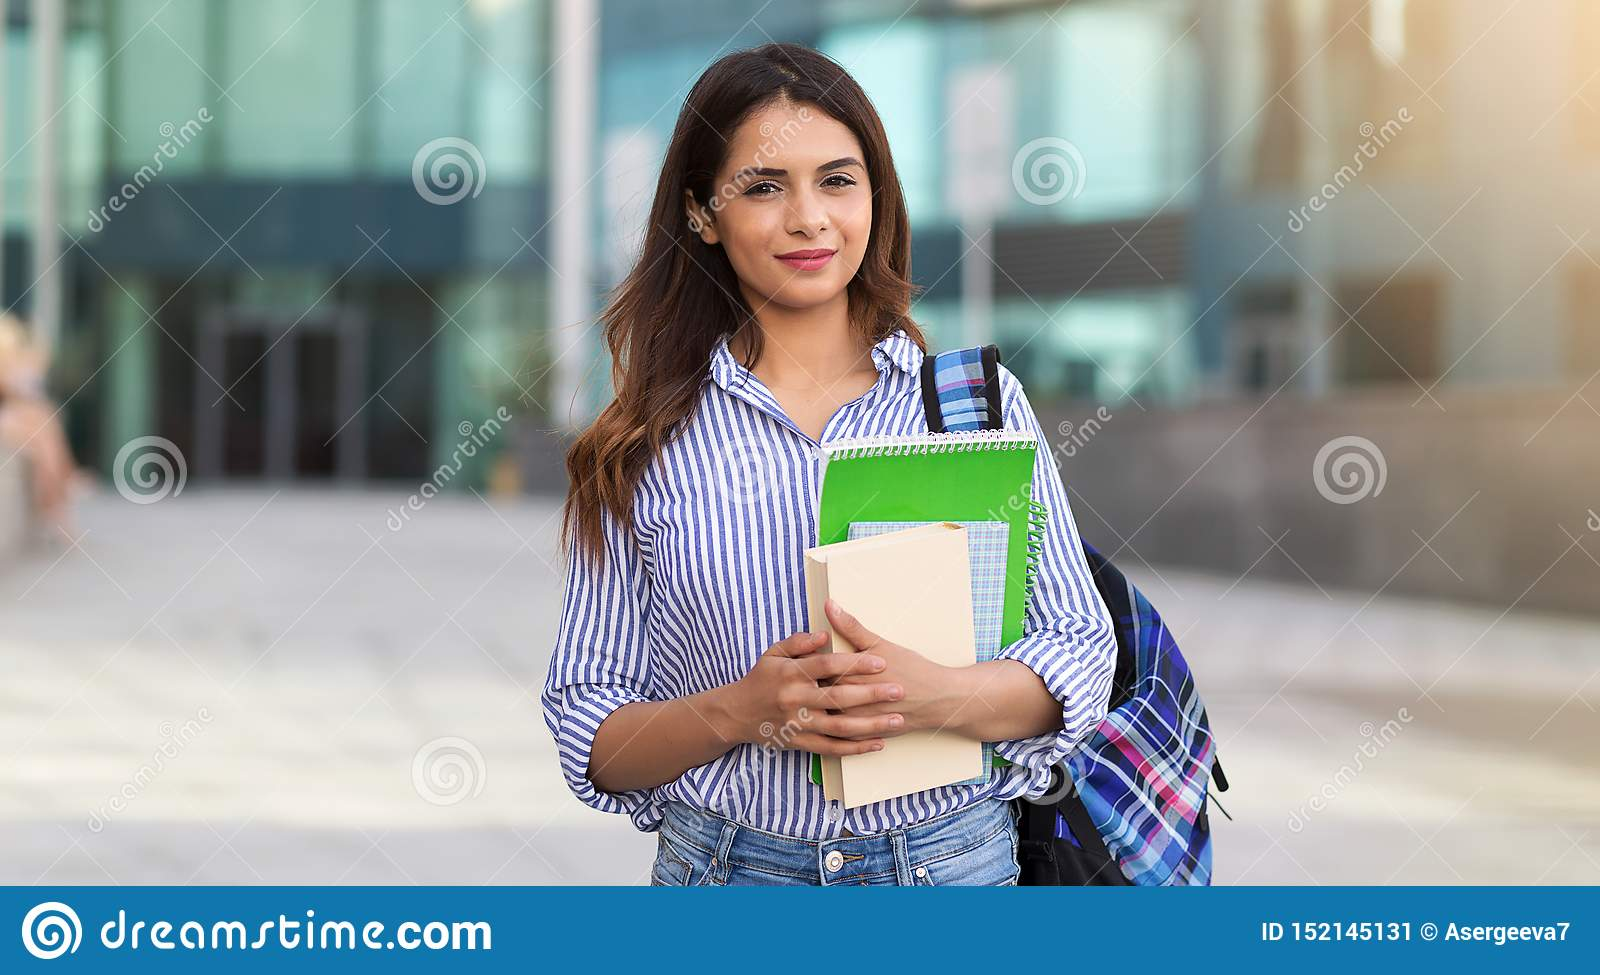 Portrait of young smiling woman holding books, study, education, knowledge, goal concept